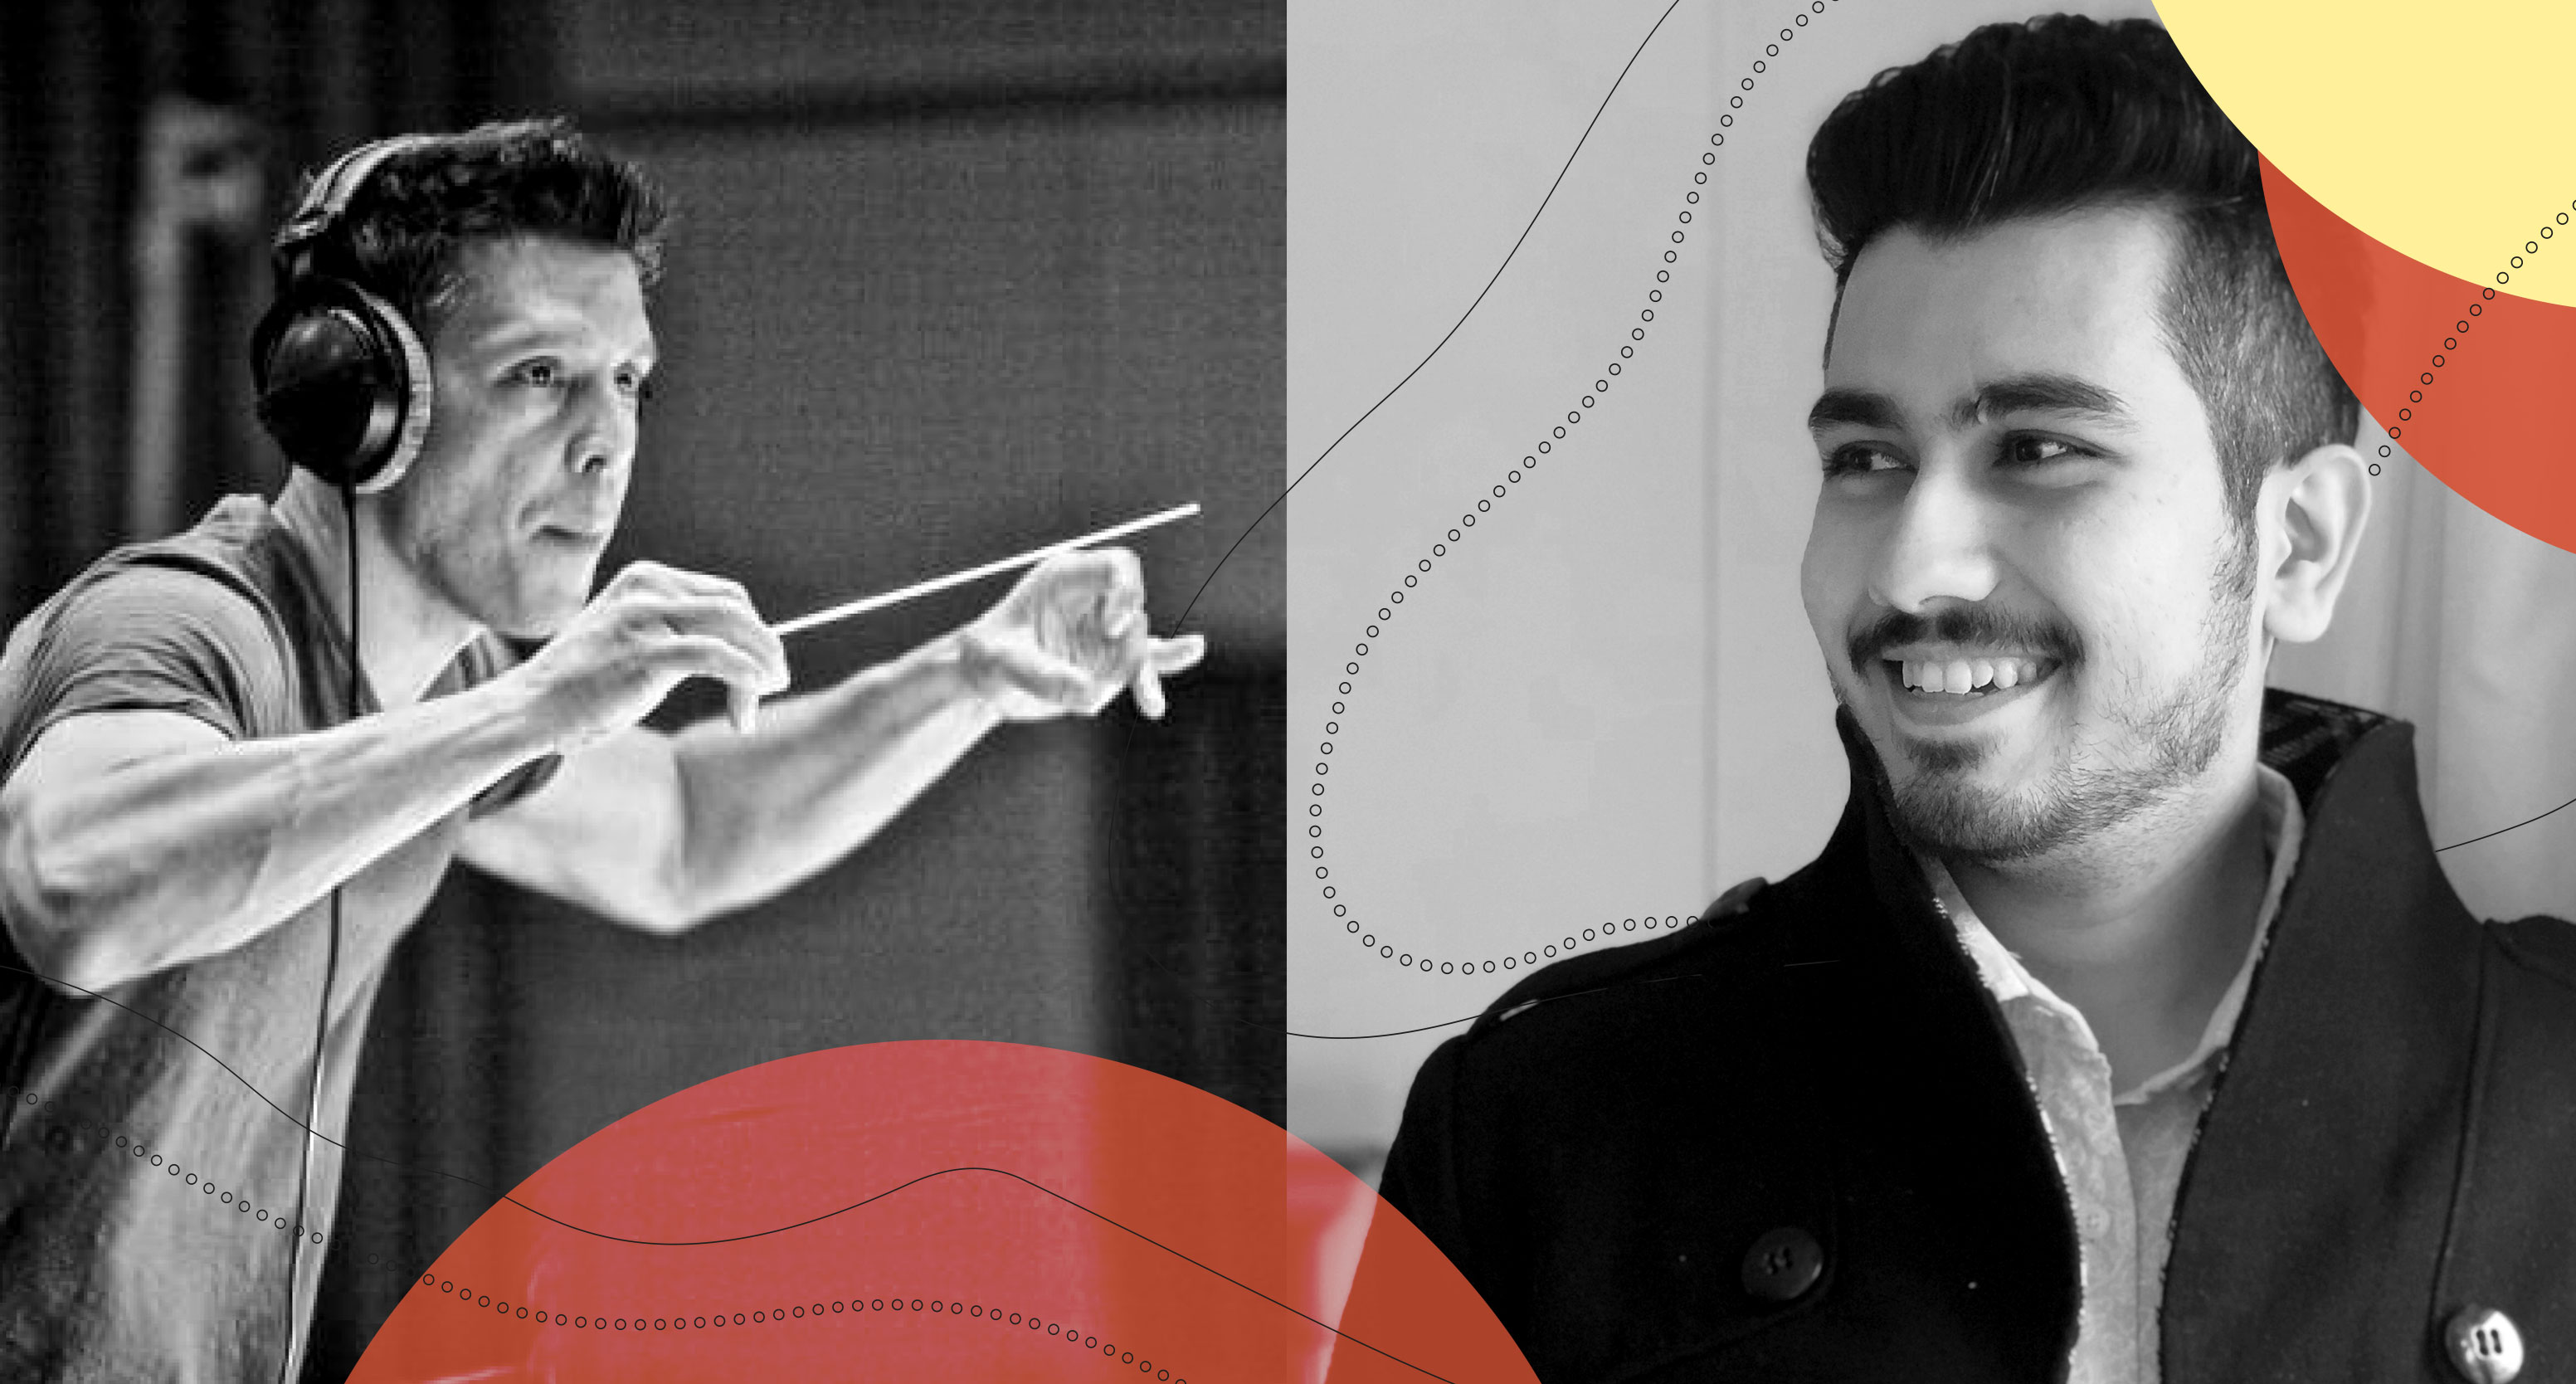 black and white images of juan carlos rodriguez and sidhant kapoor